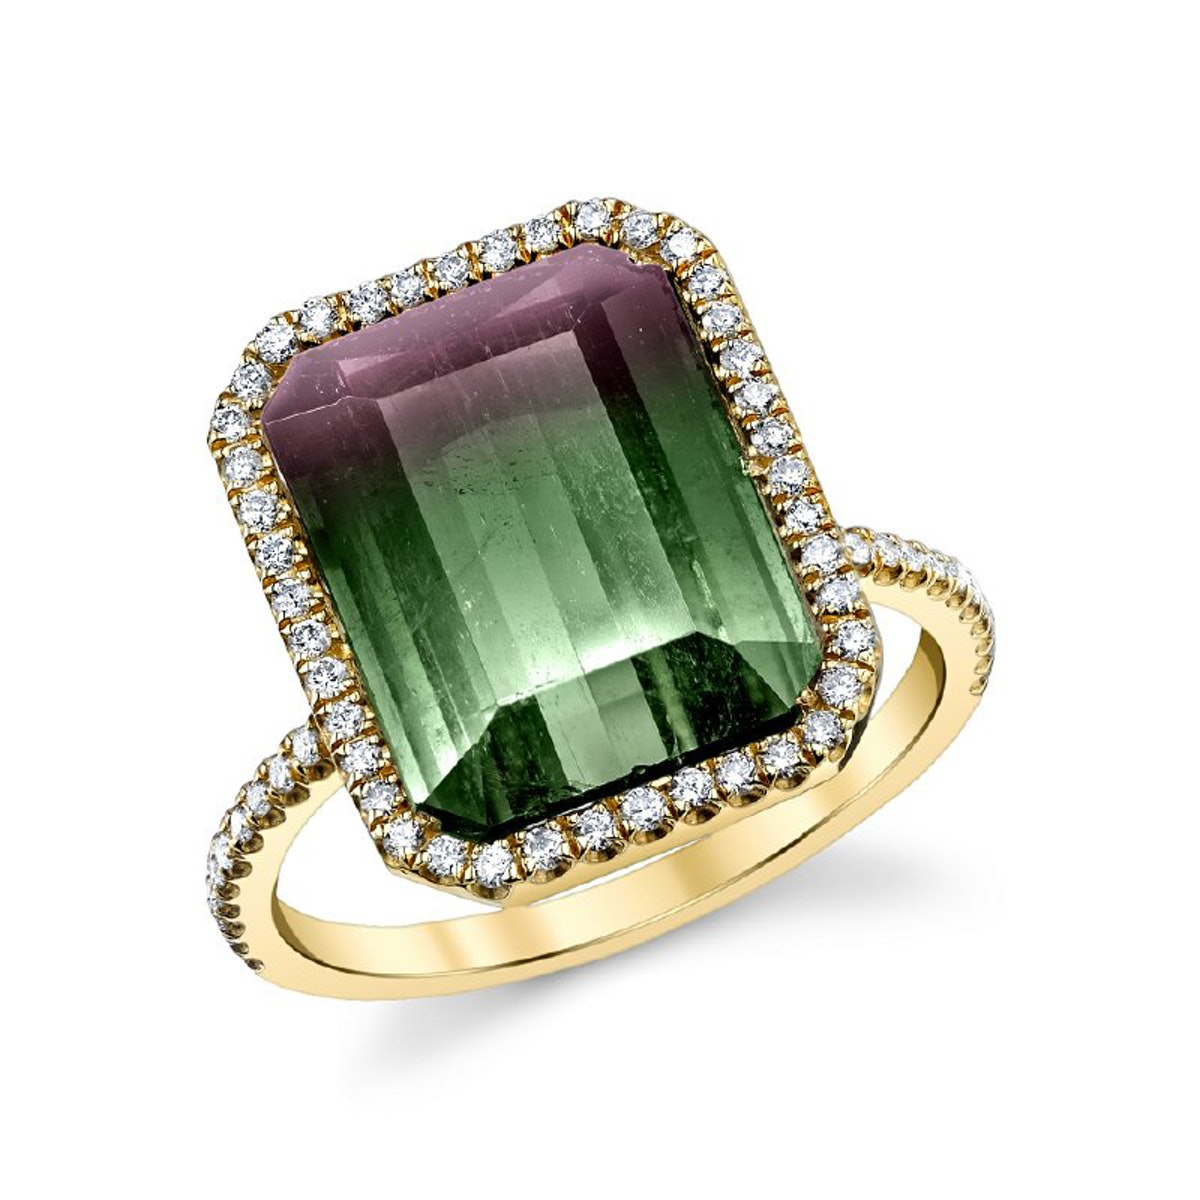 Suzanne Felson ring